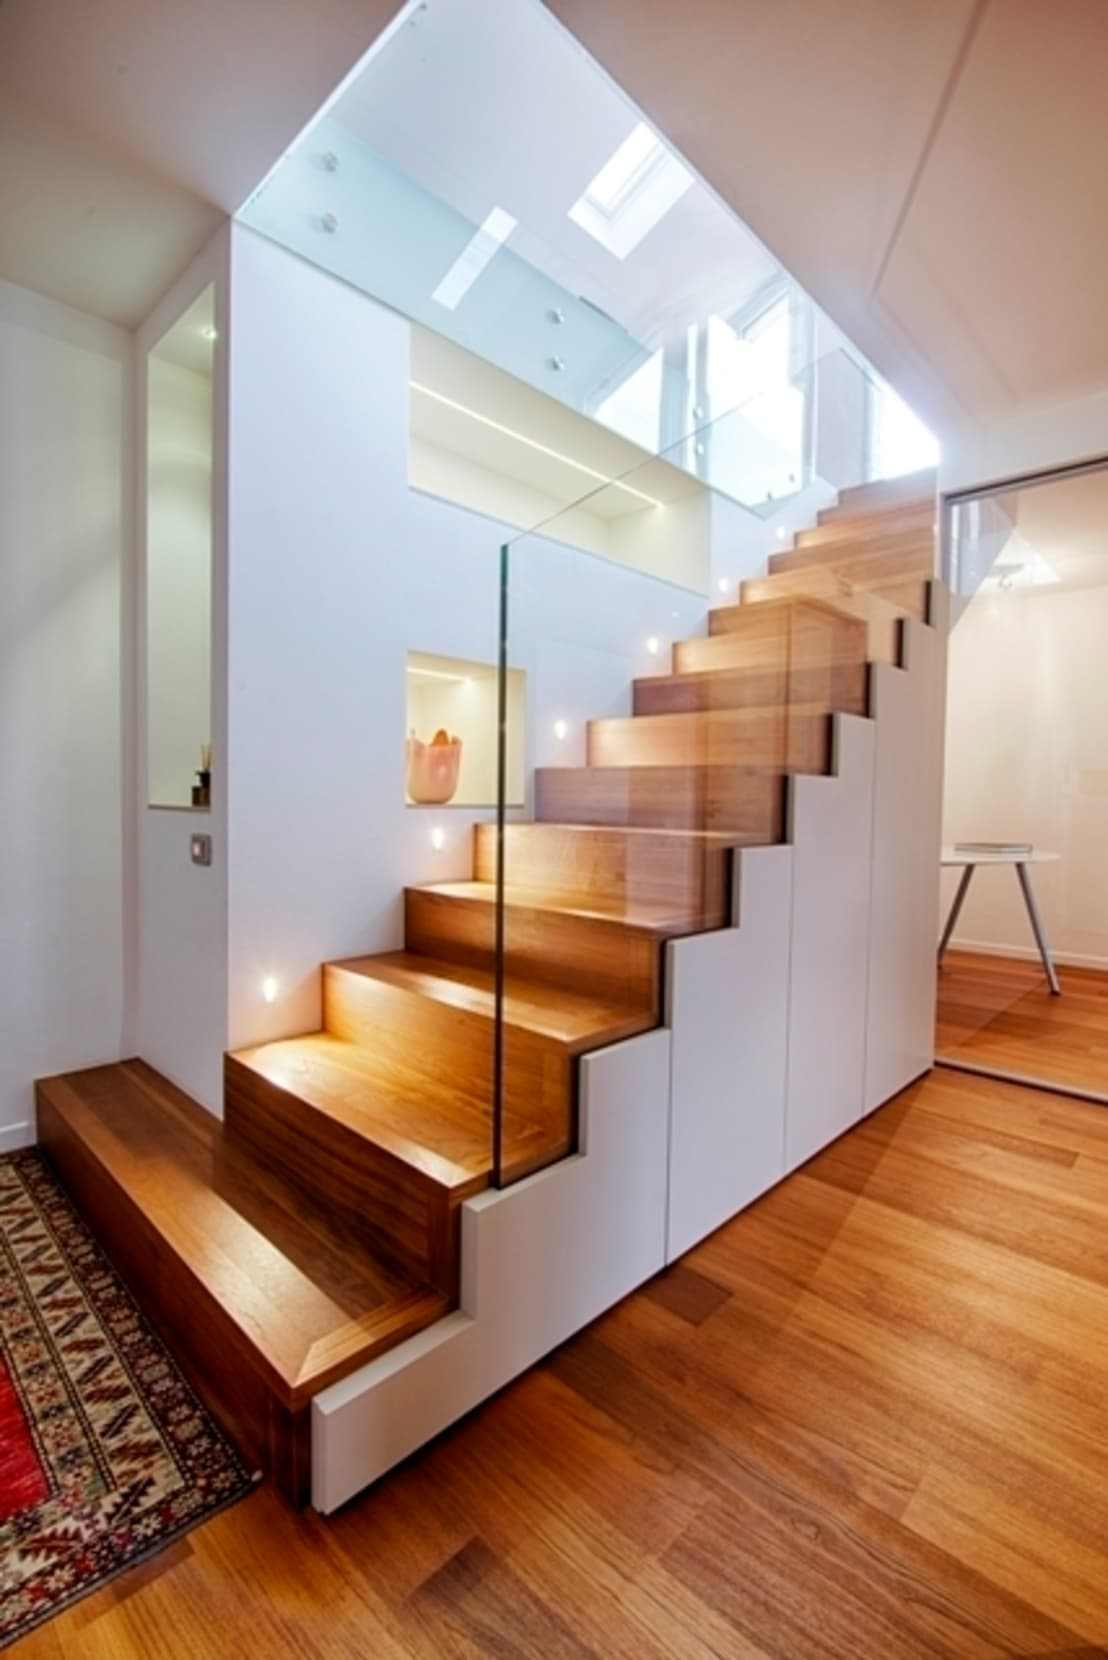 30 dise os de escaleras para casas modernas for Escaleras de interior fotos